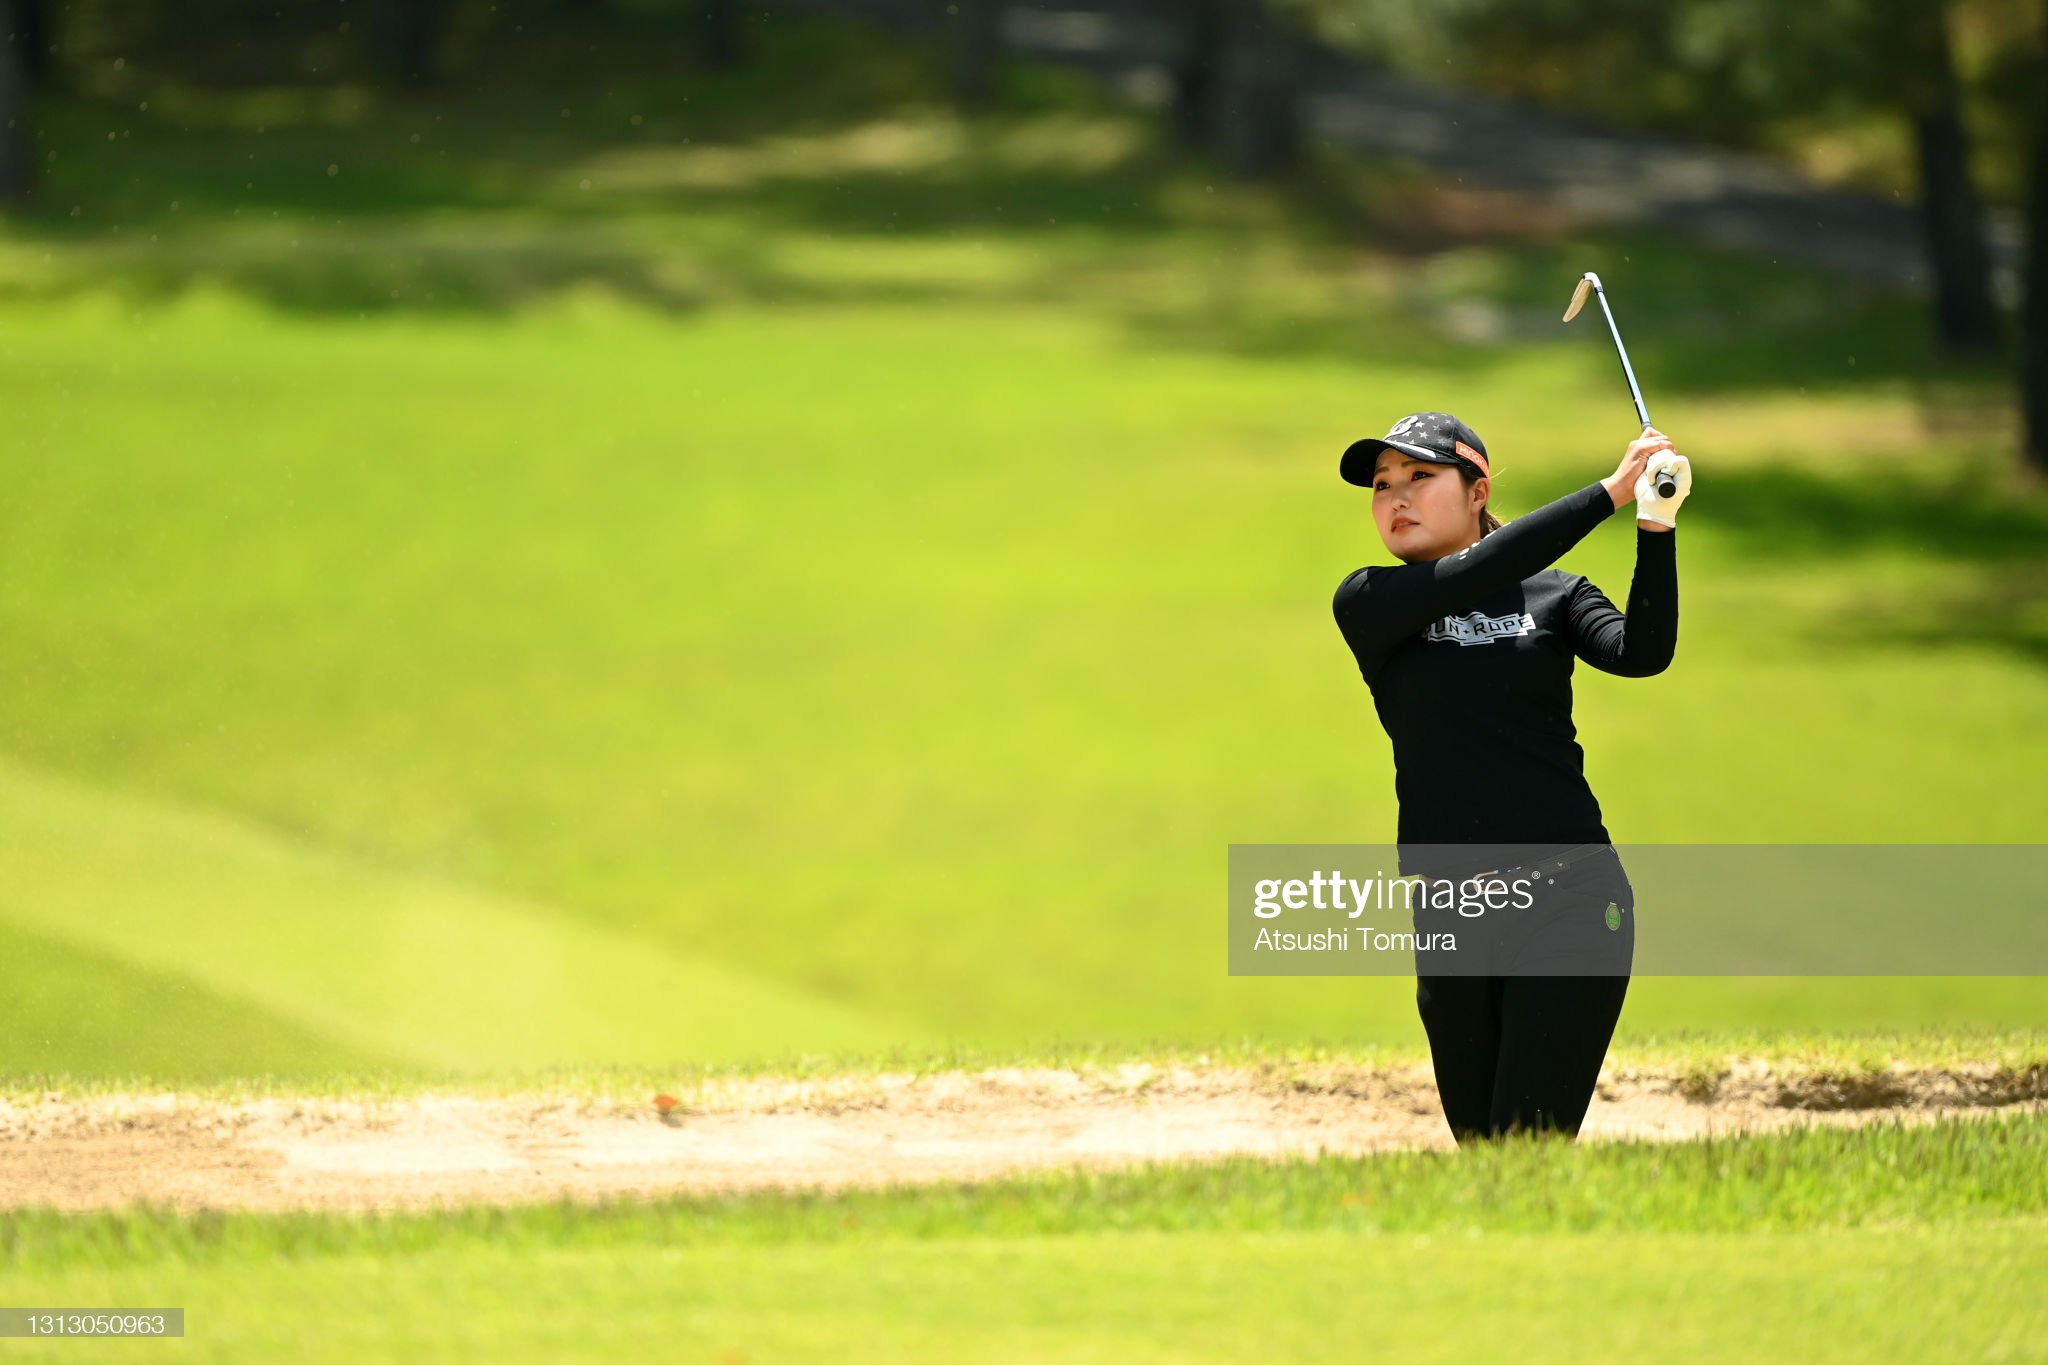 https://media.gettyimages.com/photos/sayaka-takahashi-of-japan-hits-her-second-shot-on-the-7th-hole-during-picture-id1313050963?s=2048x2048